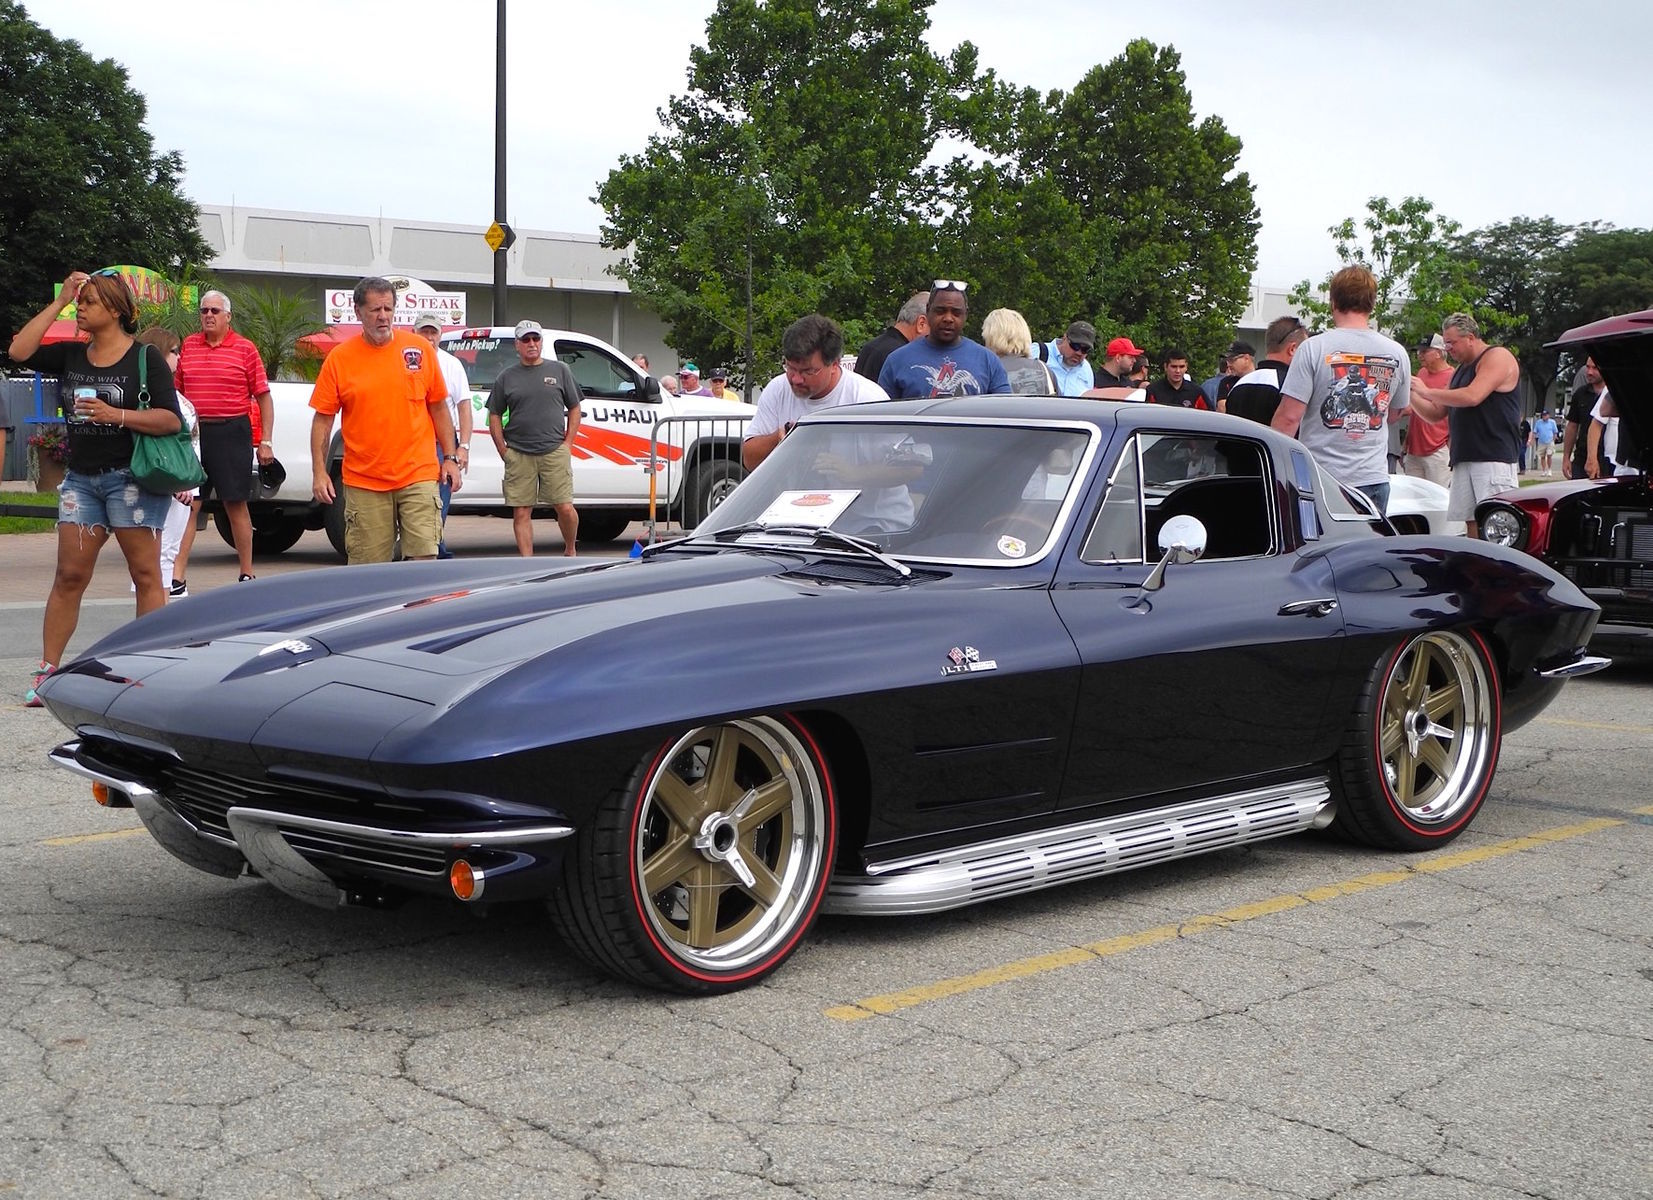 1964 Chevrolet Corvette Stingray | Barry Blomquist's '64 Corvette on Forgeline Center Locking One-Off Wheels